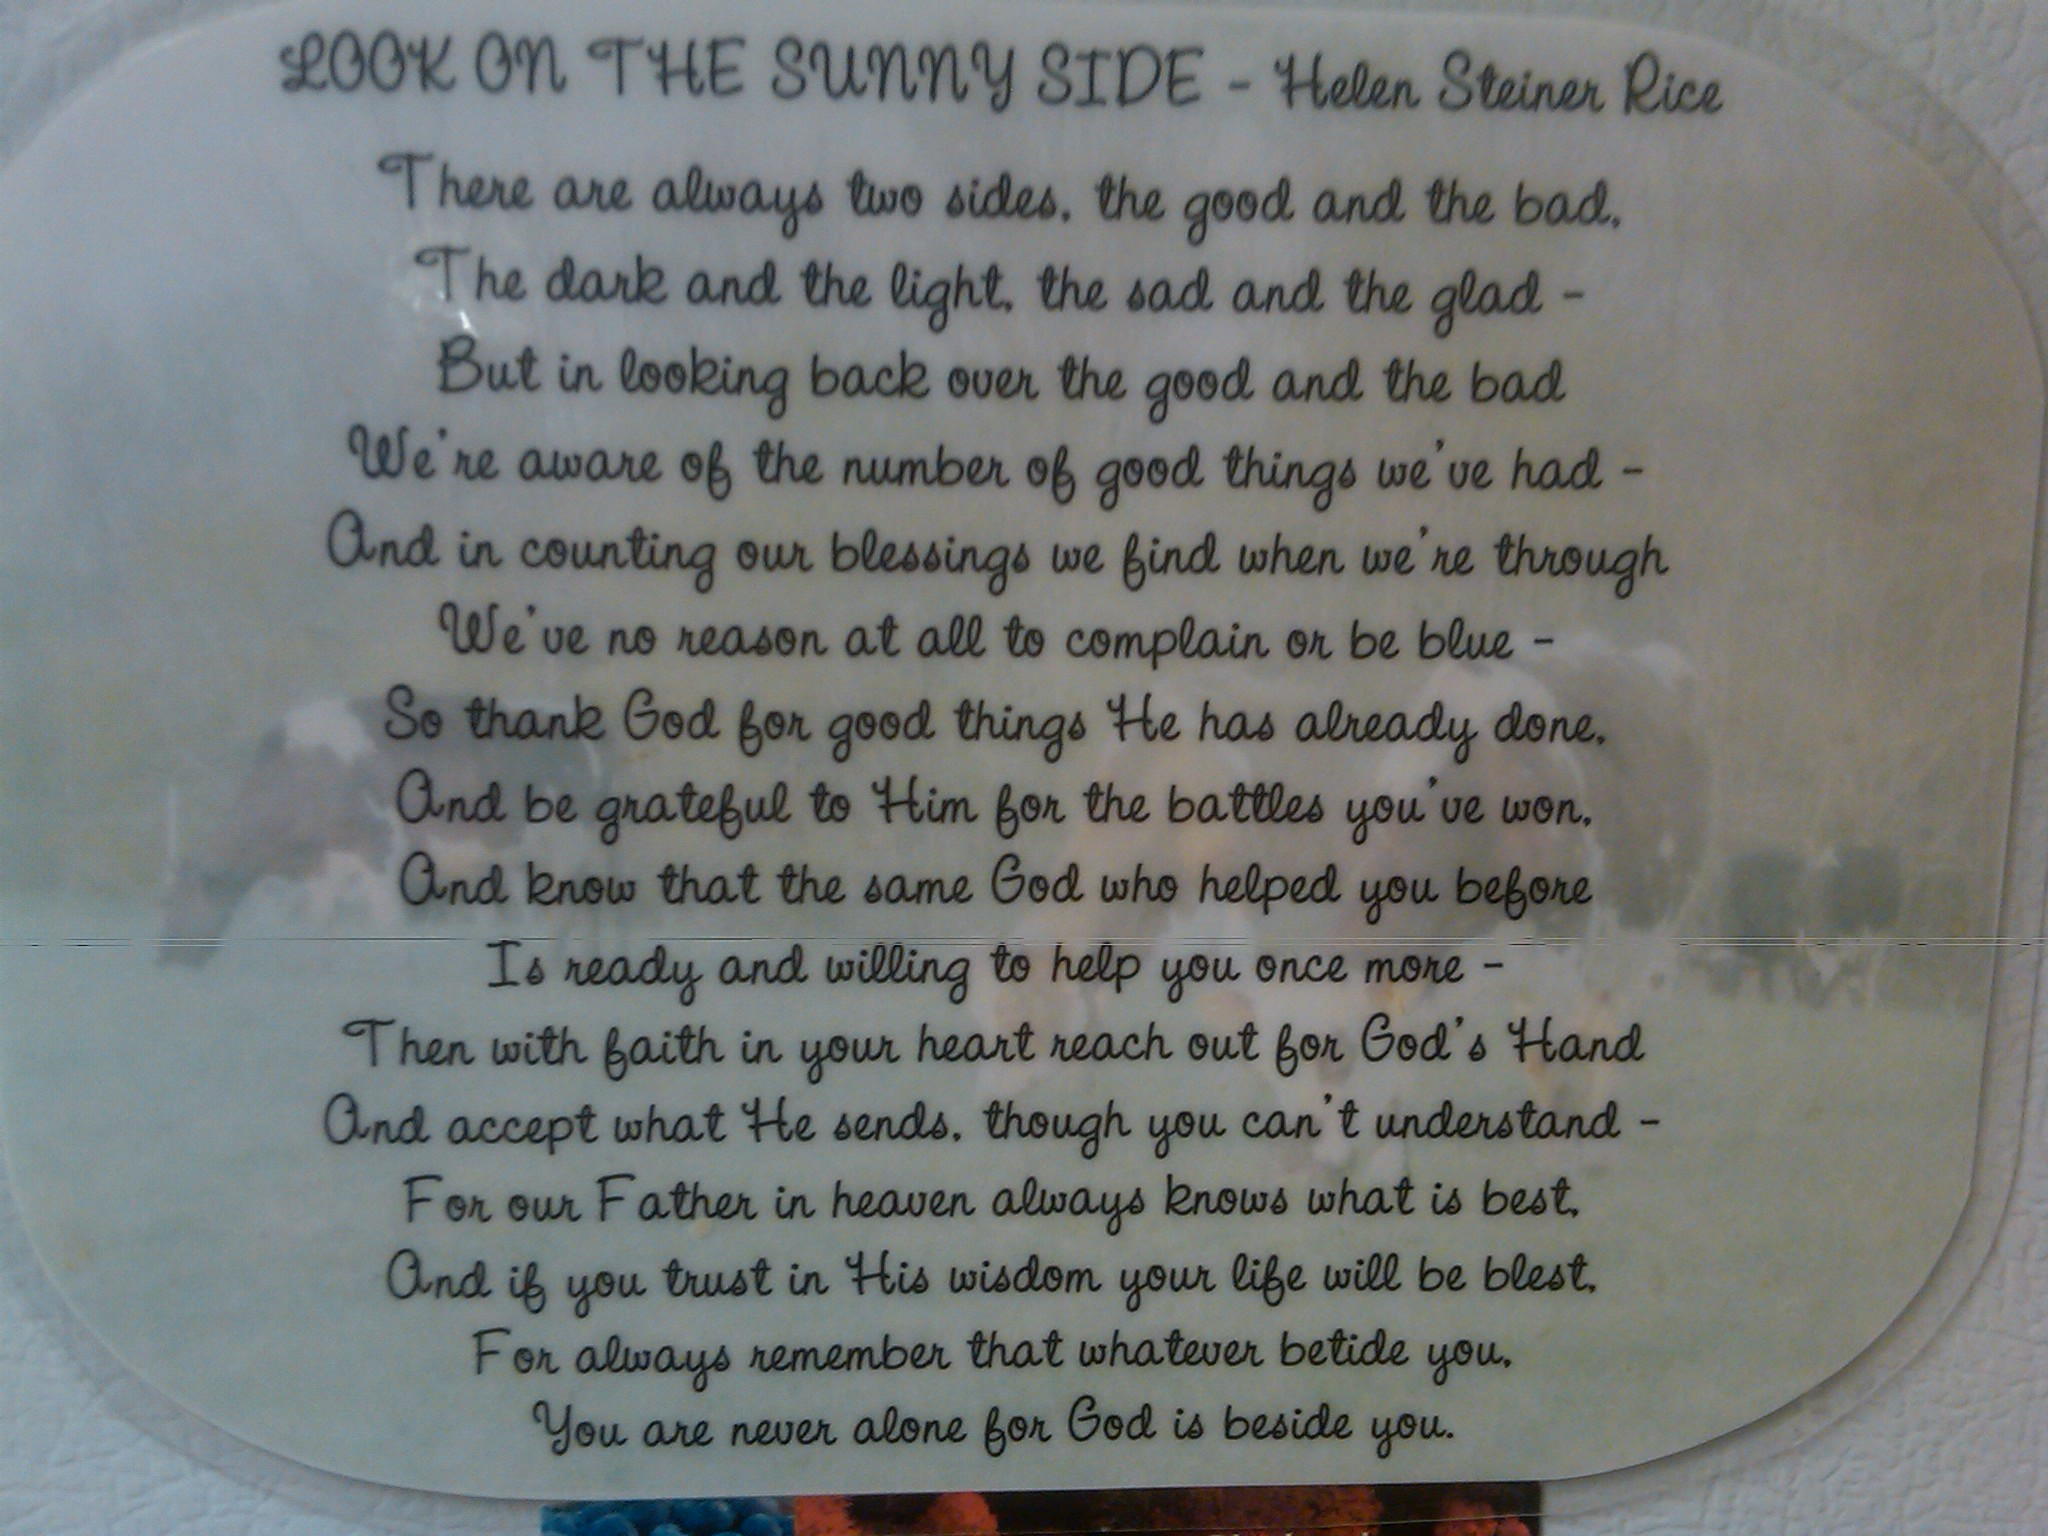 LOOK ON THE SUNNY SIDE By Helen Steiner Rice Roberts